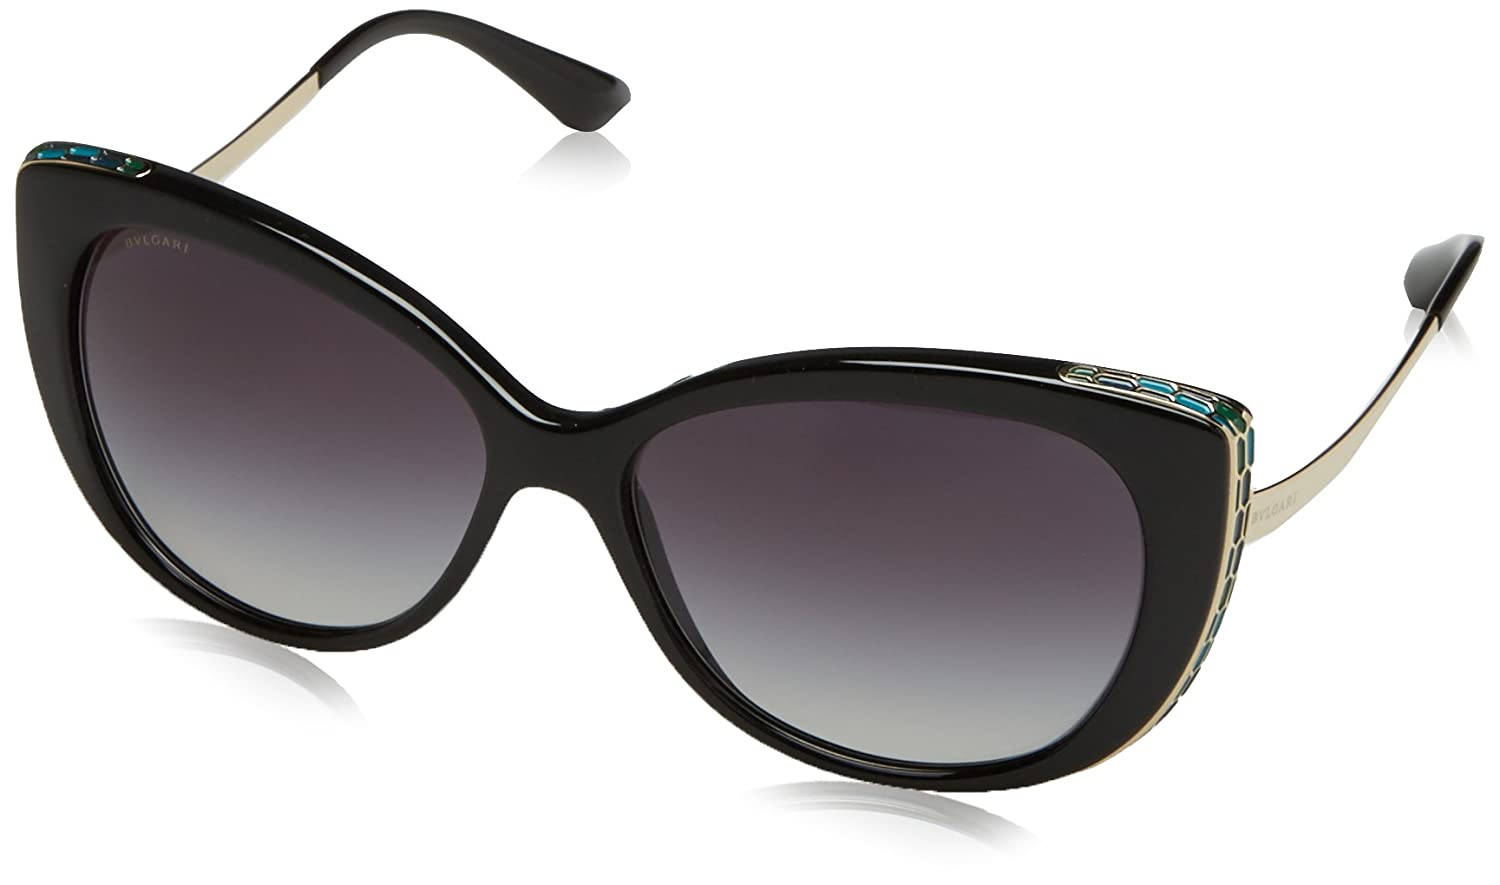 8e91552c75a Amazon.com  Bvlgari BV8178 901-8G Black Gold BV8178 Cats Eyes Sunglasses  Lens Category 3  Bvlgari  Clothing